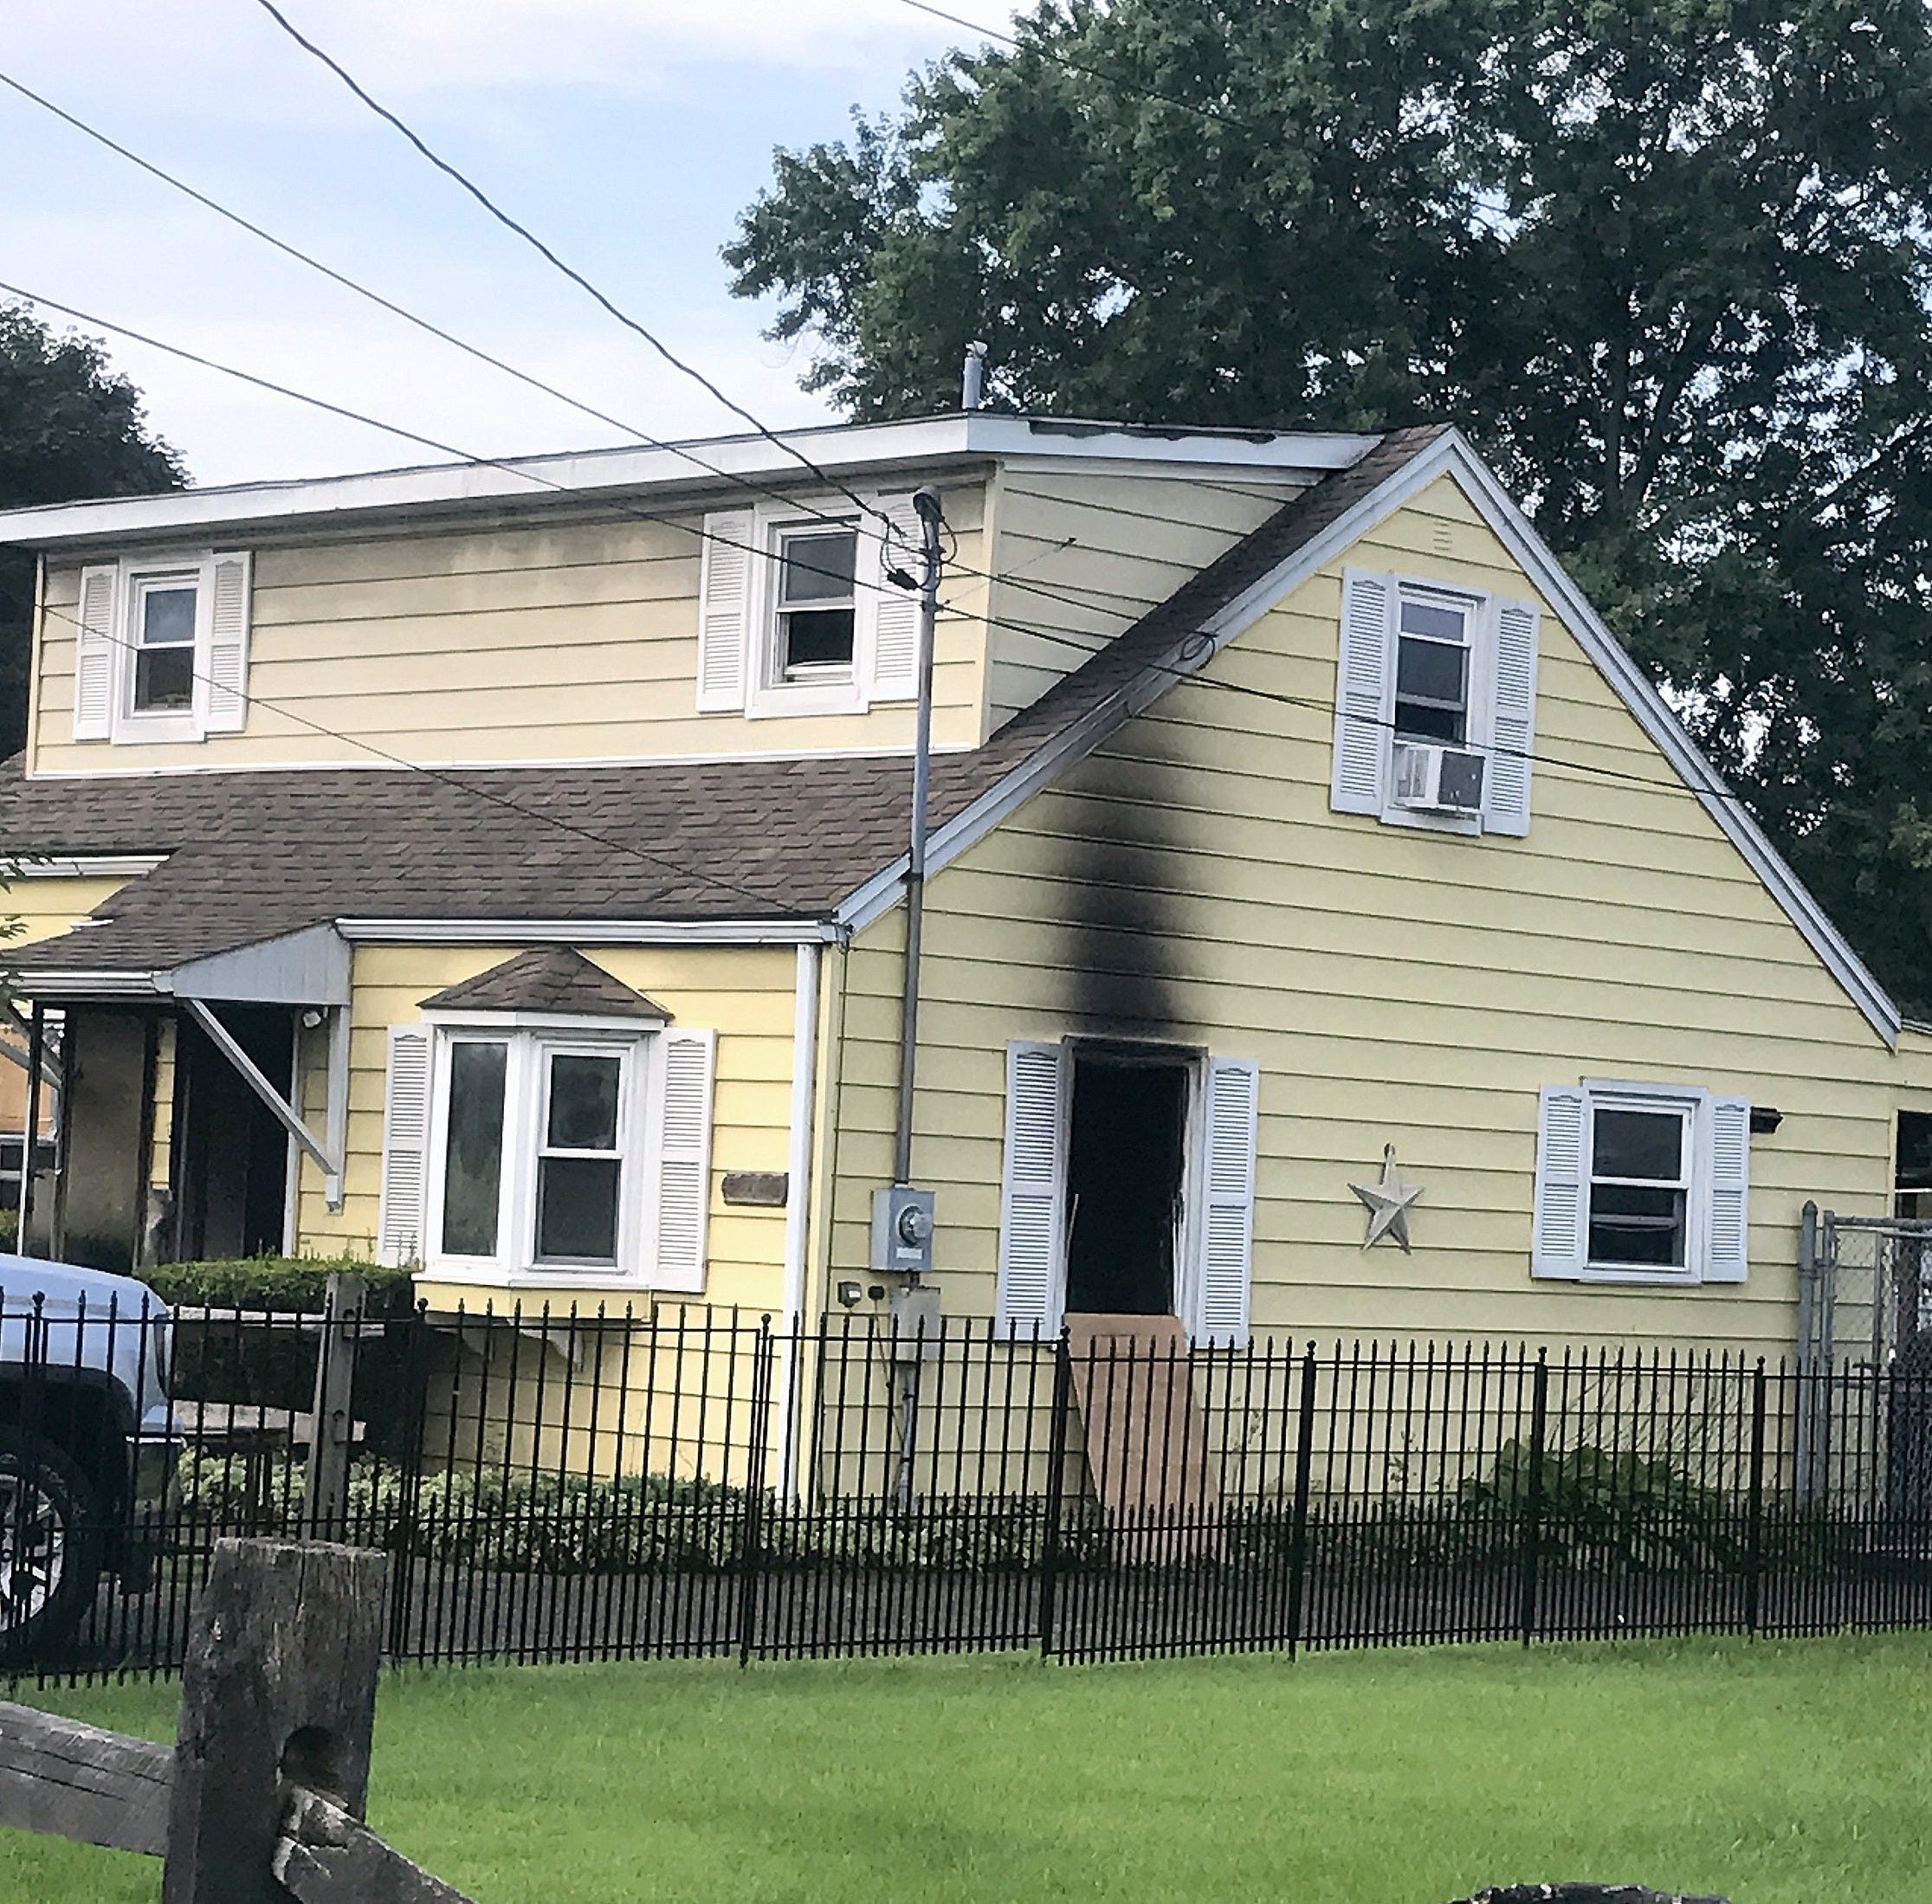 Horseheads house fire deemed suspicious